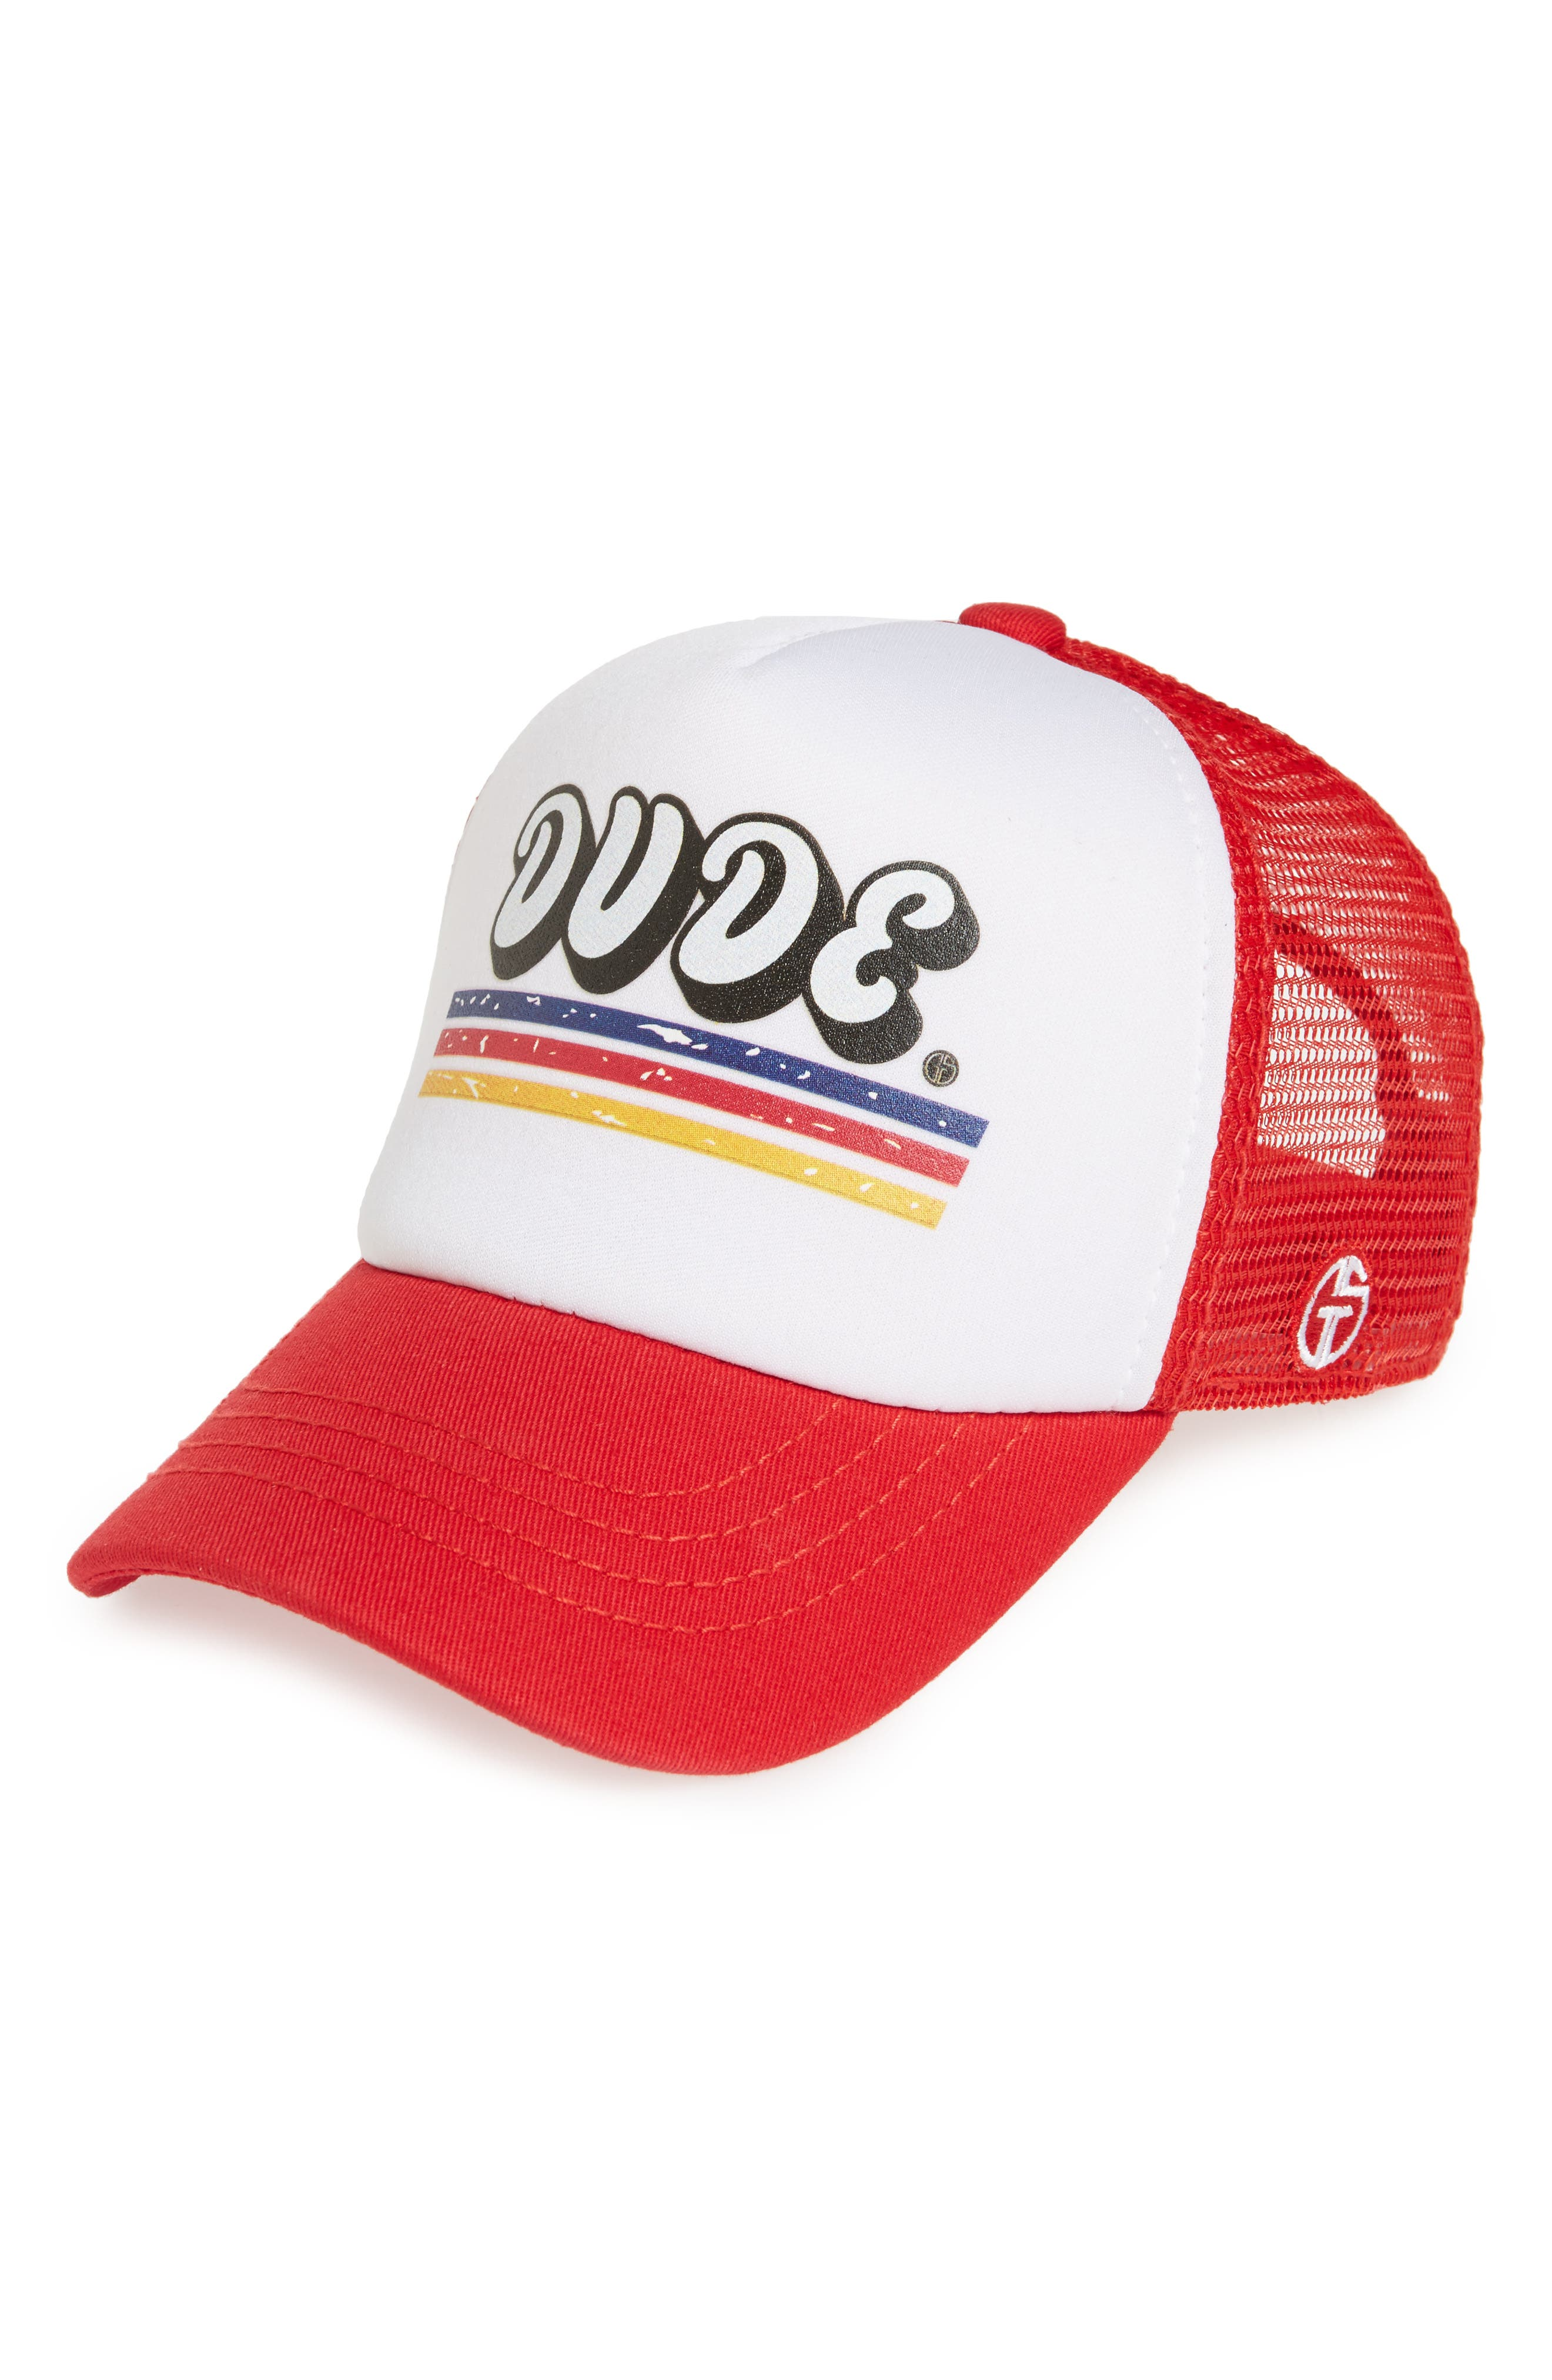 Dude Trucker Hat,                             Main thumbnail 1, color,                             Red/ White